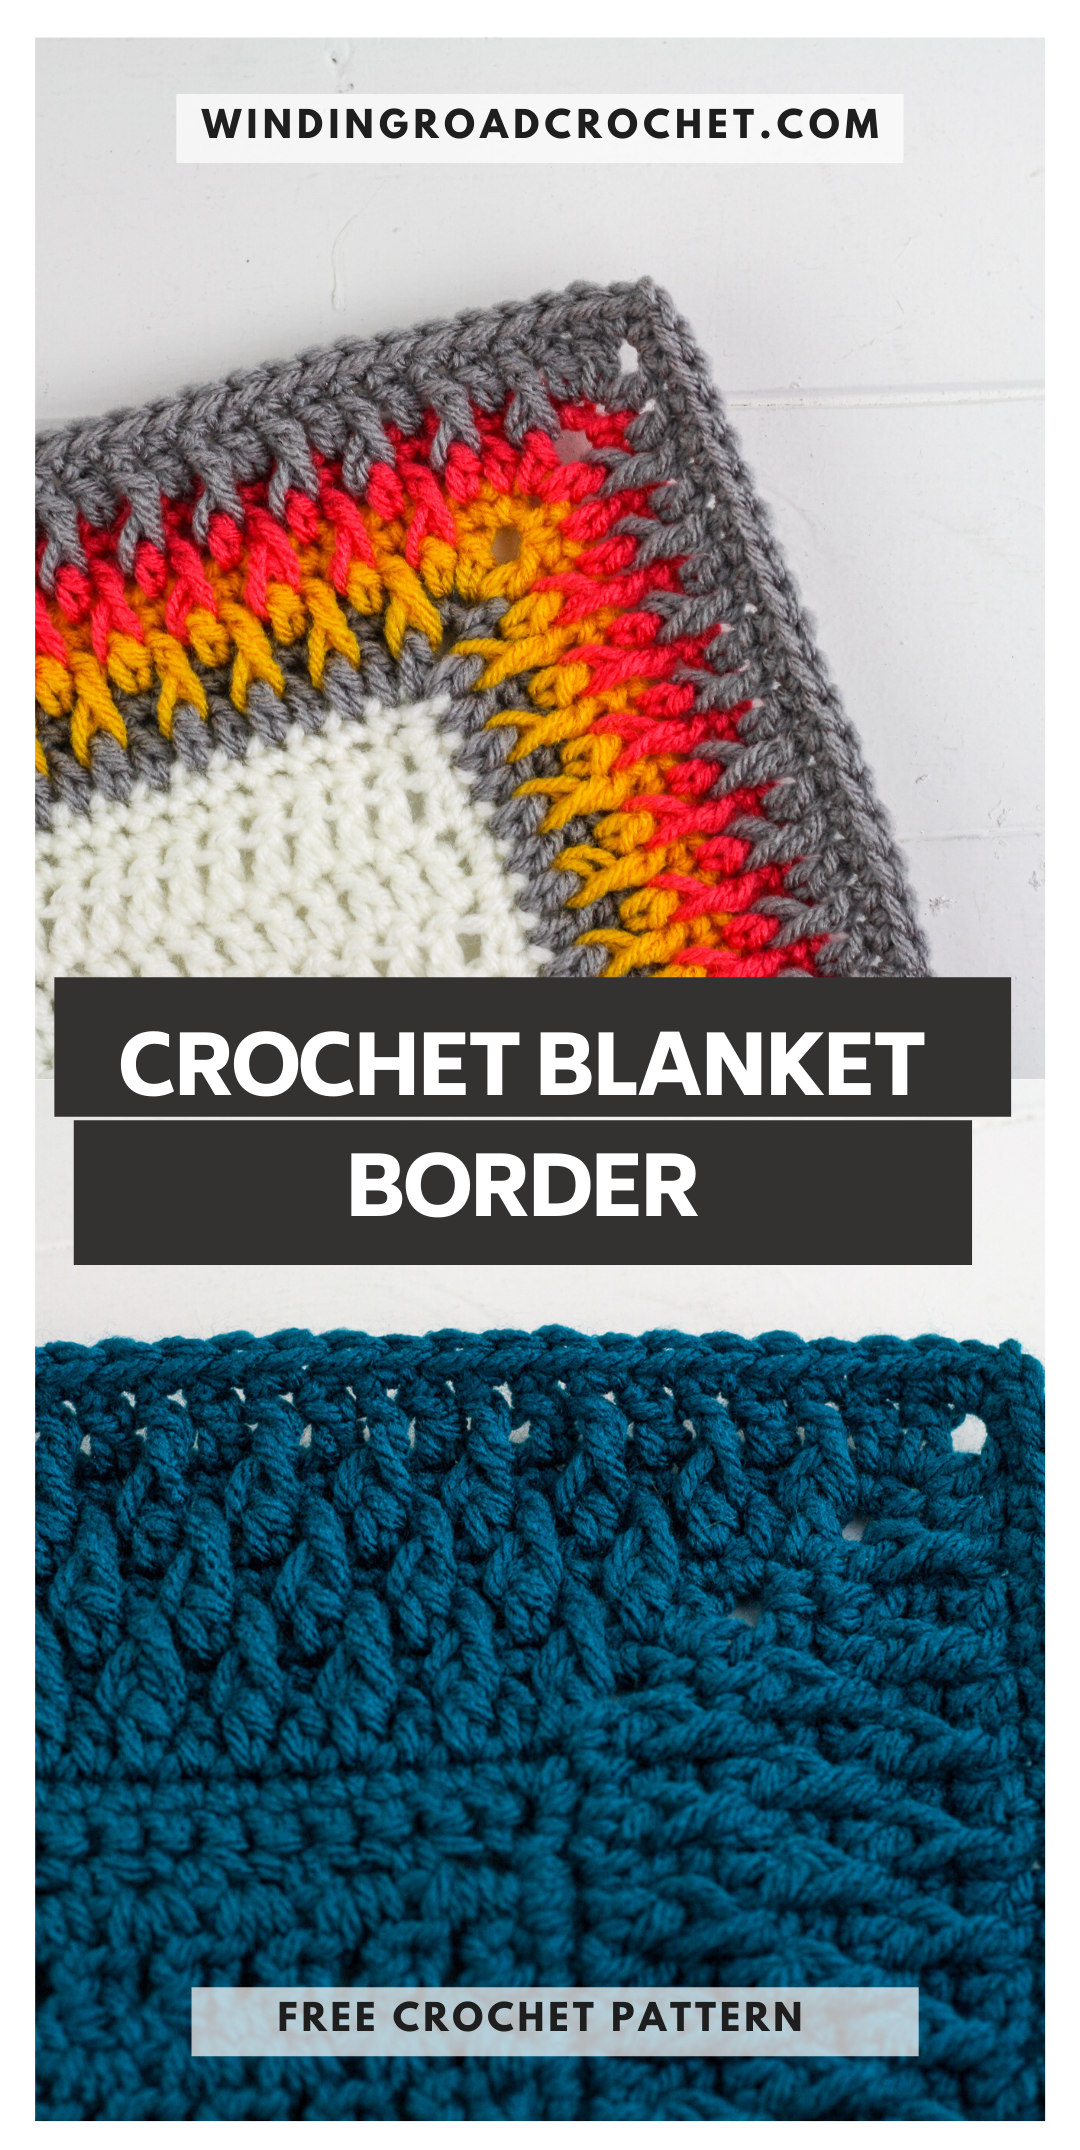 Free Crochet Blanket Border